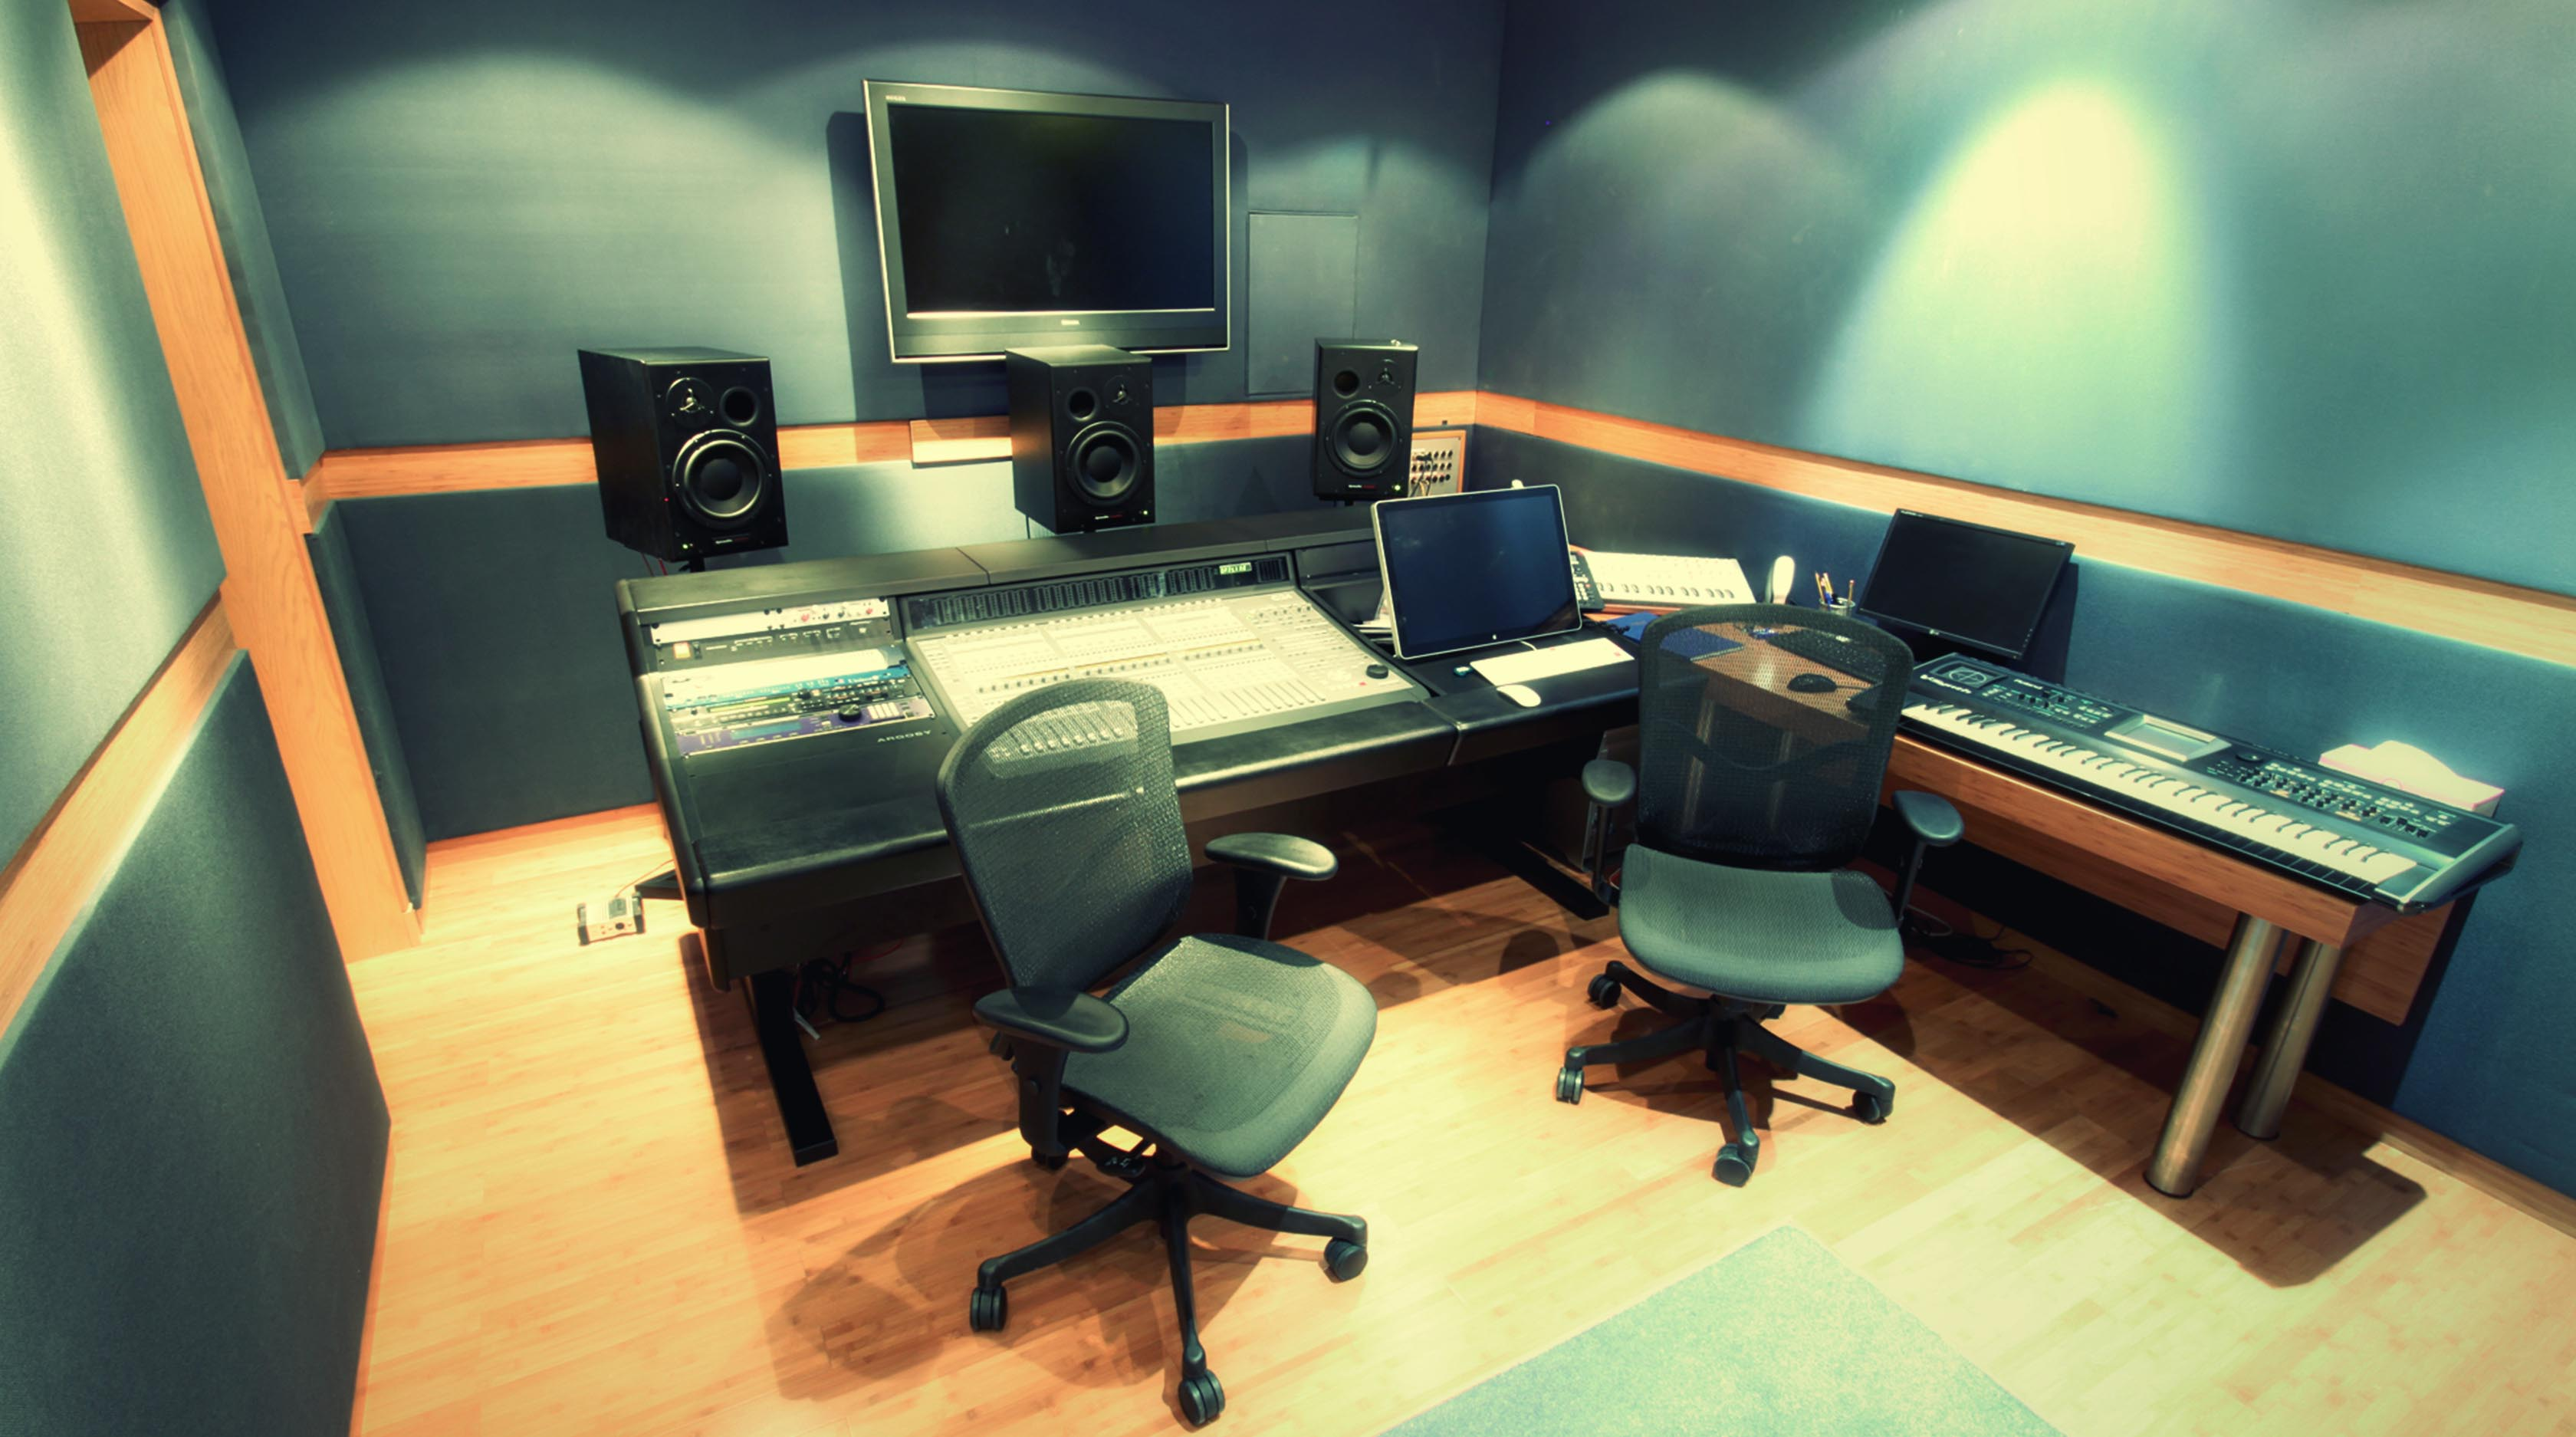 Providing sound mixing in a variety of surround configurations up to 5.1